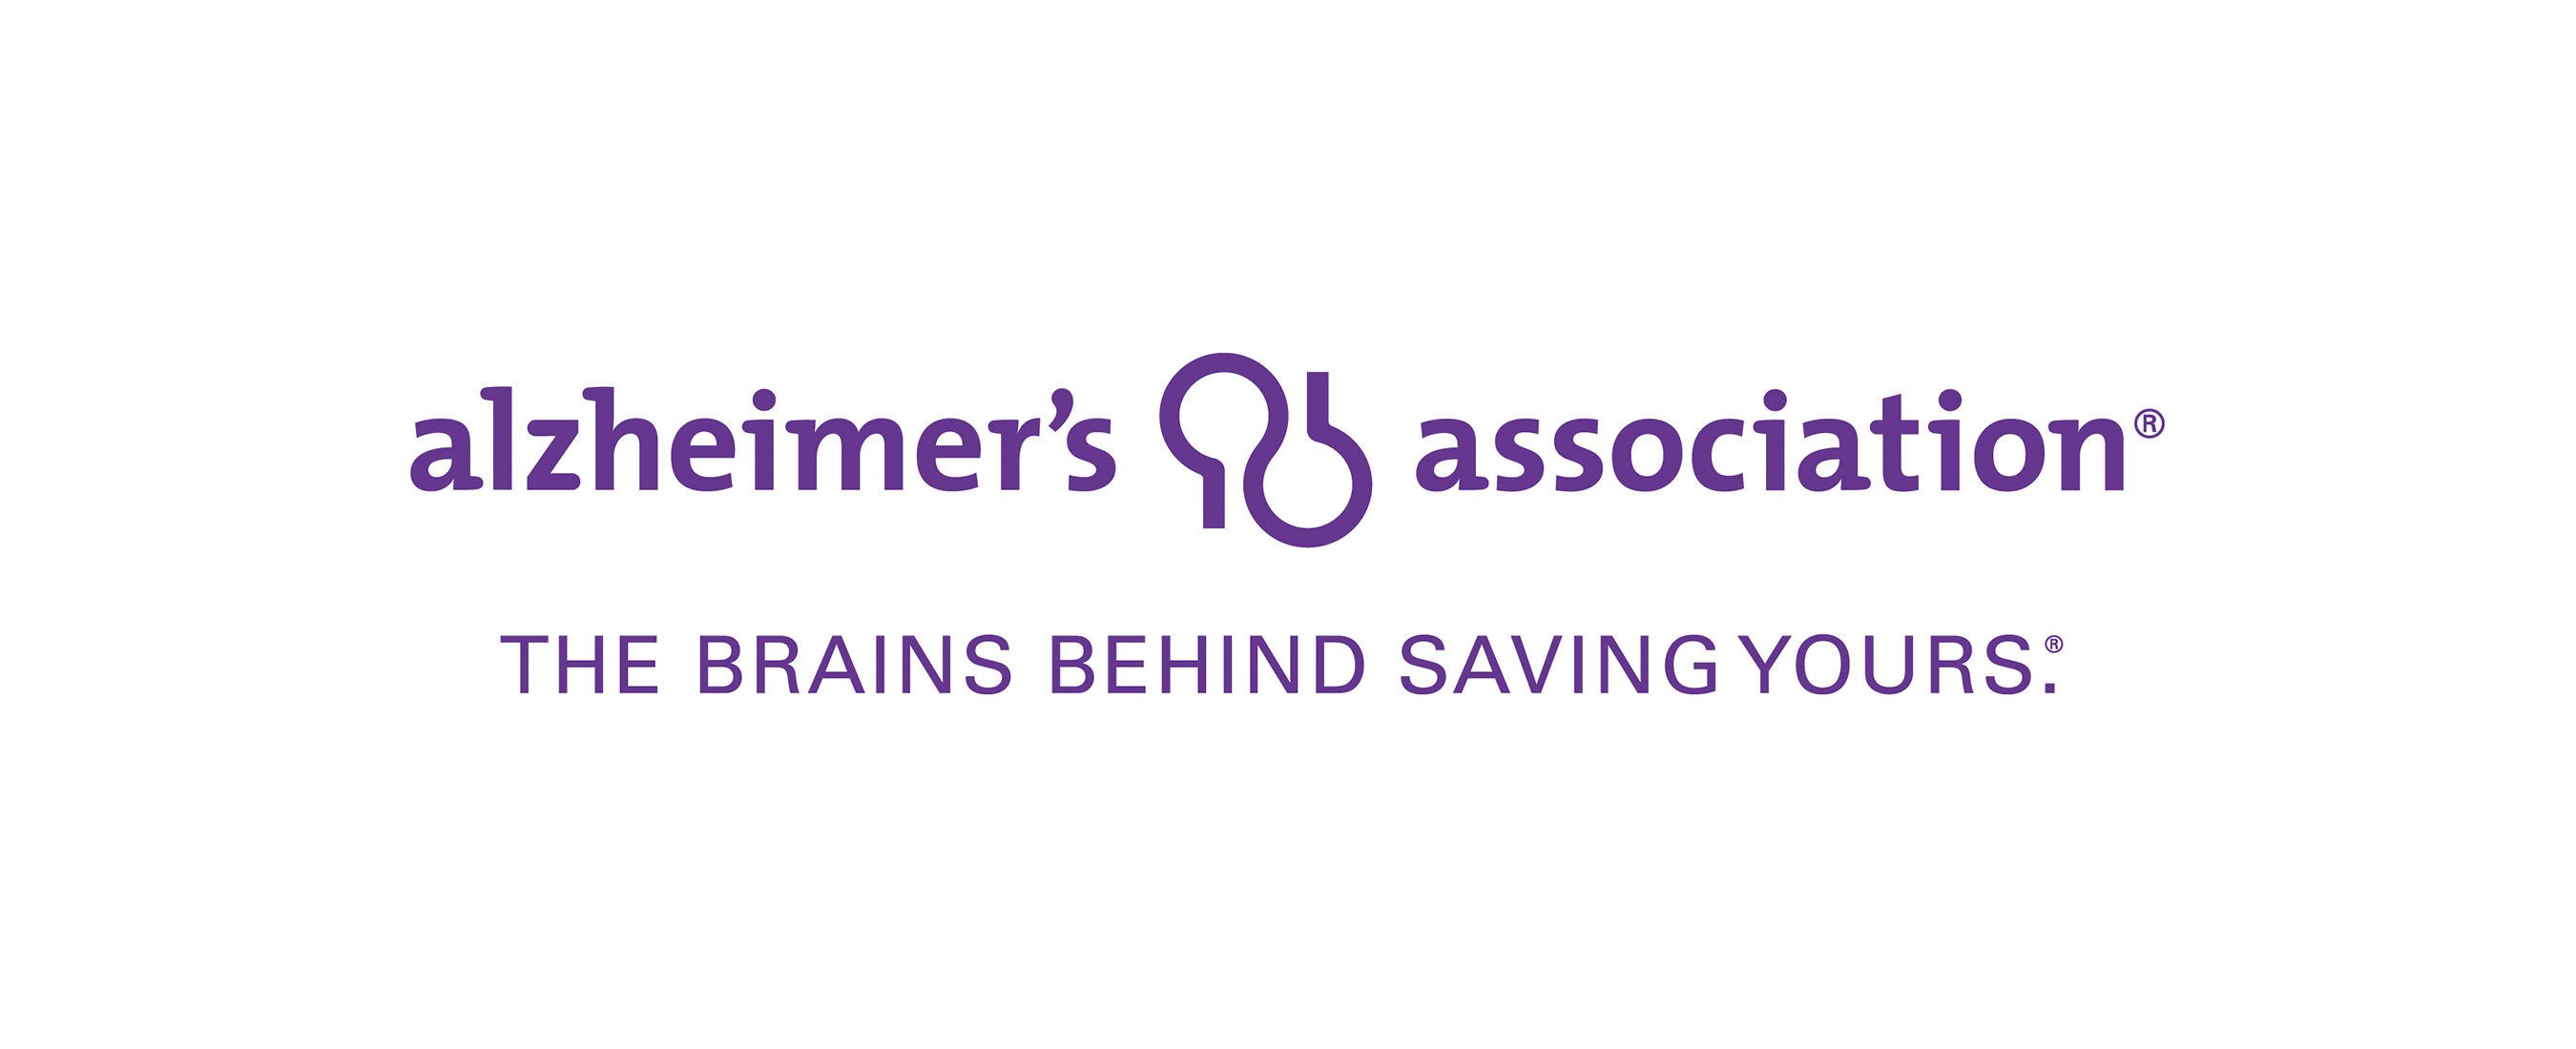 Alzheimer's Association(R) logo